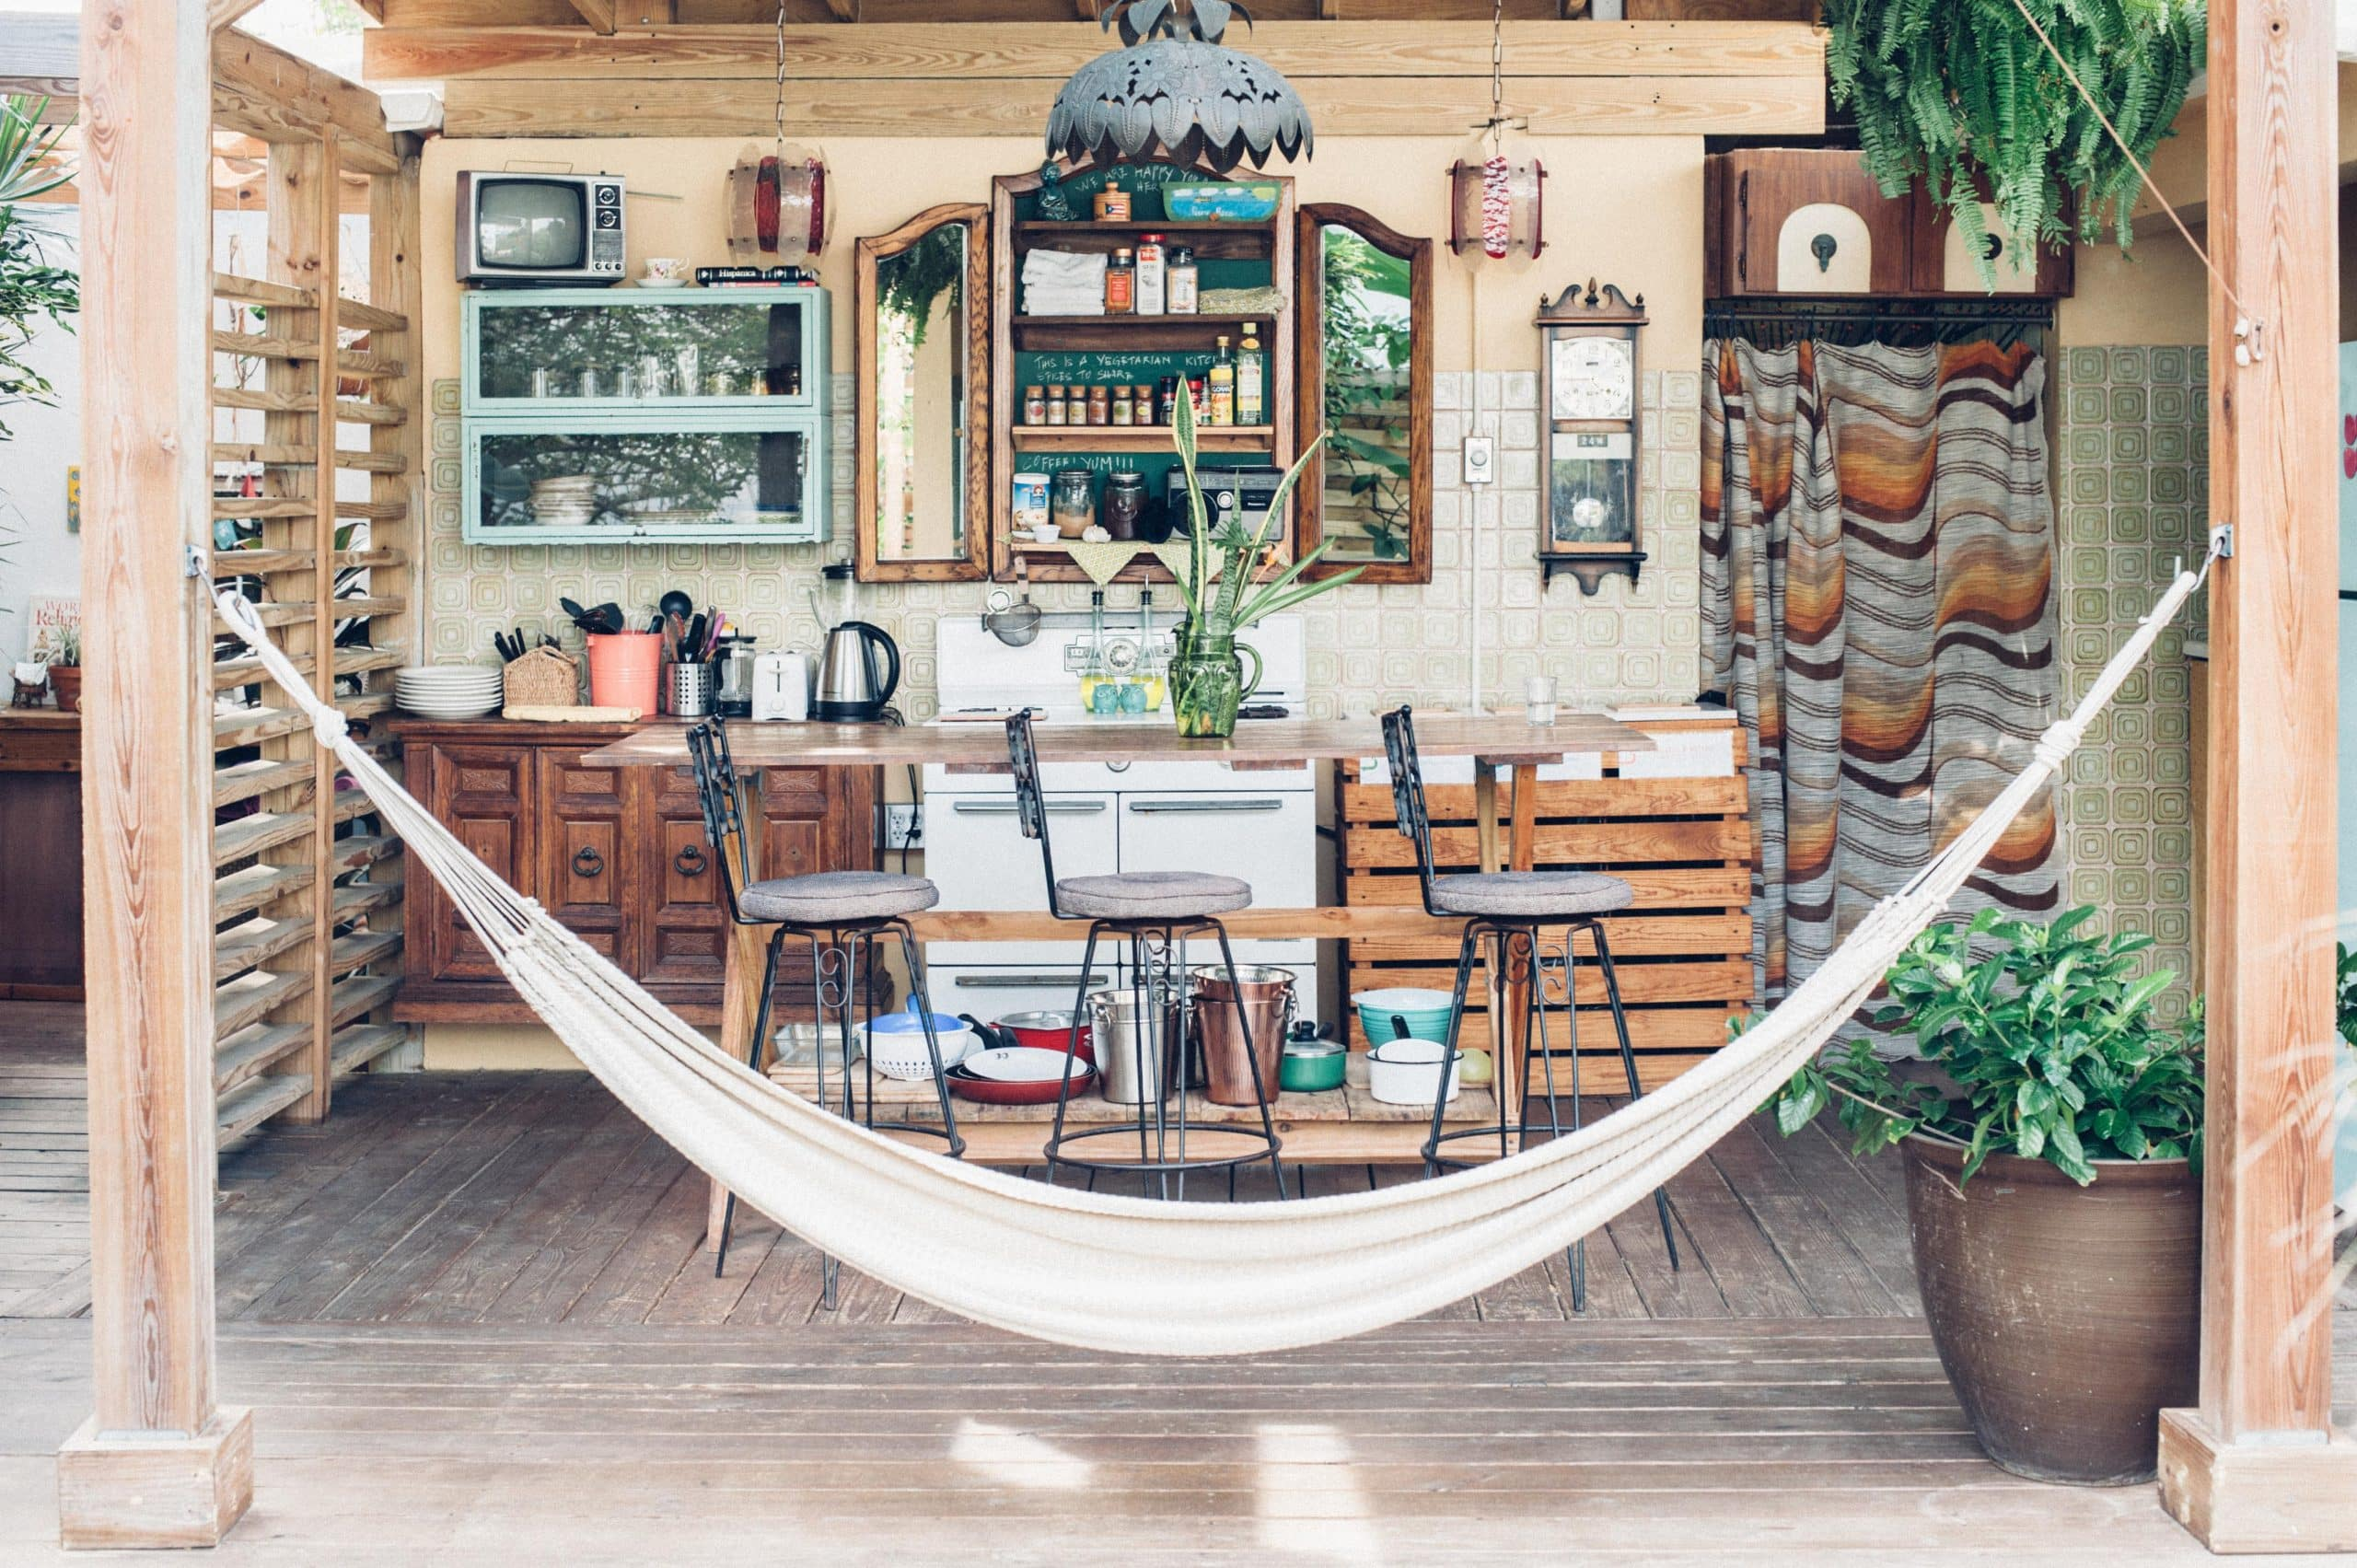 Hammock and outside kitchen at Dreamcatcher